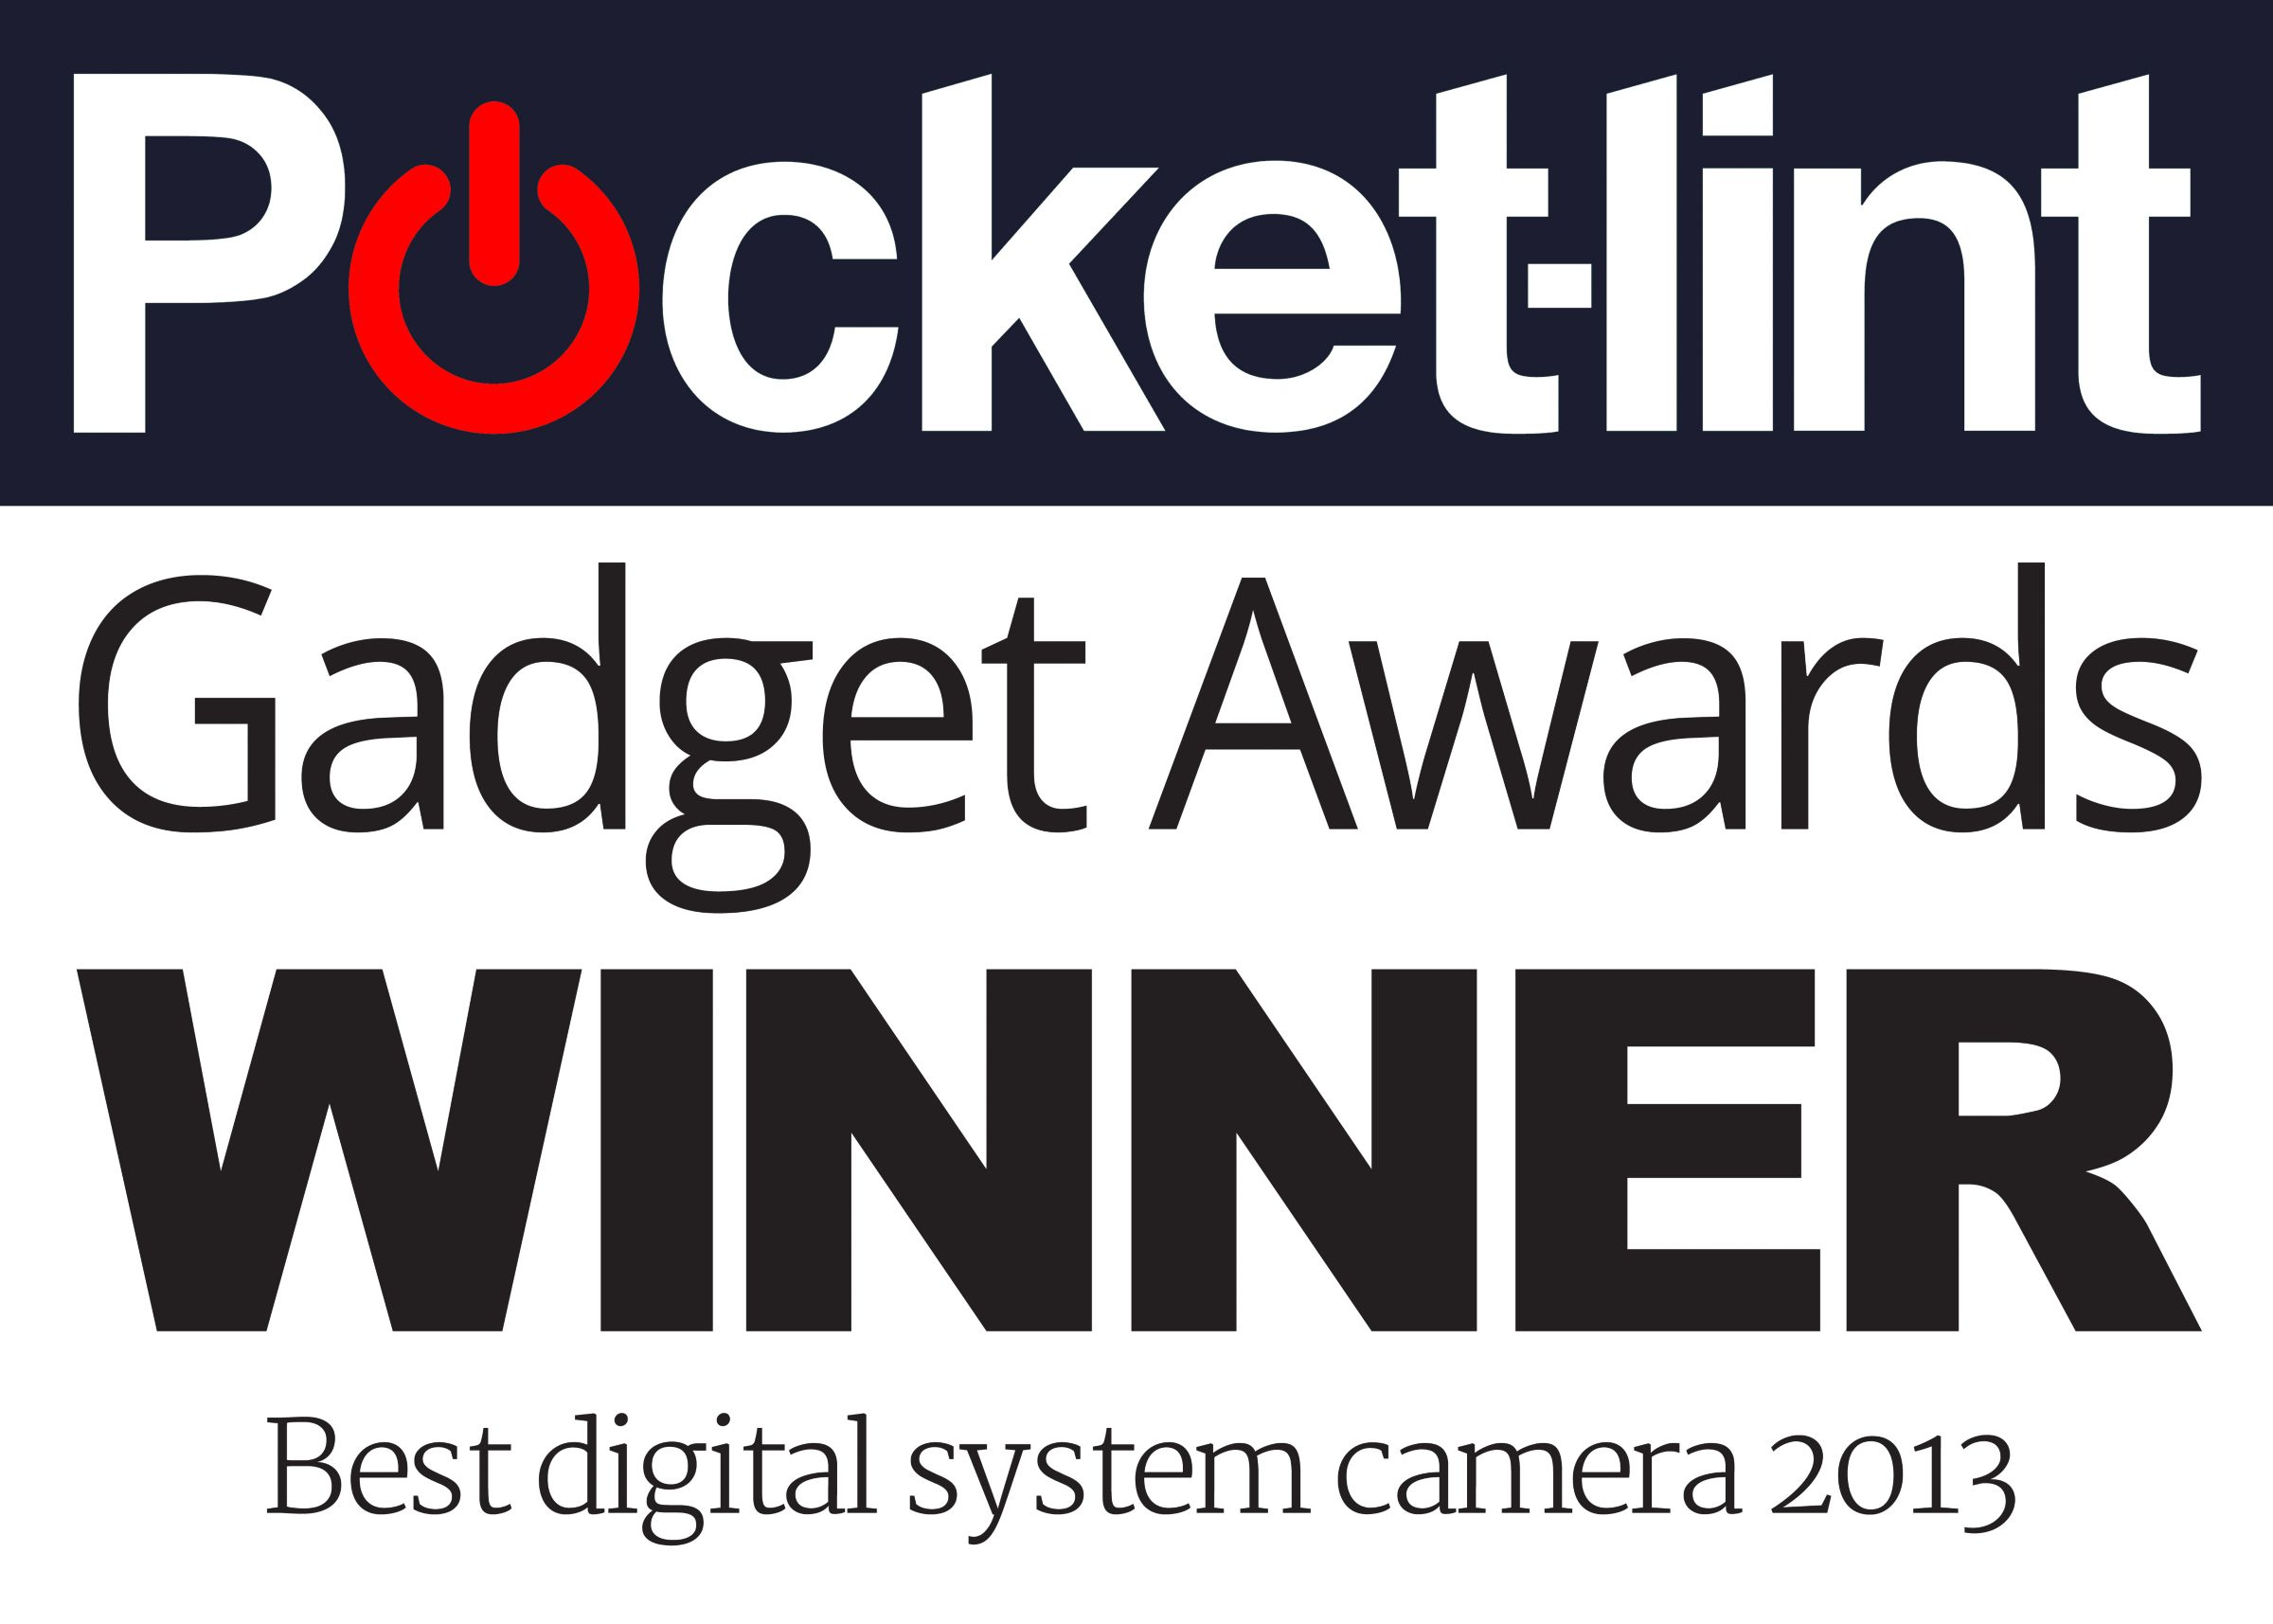 Pocket-lint Gadget Awards Winner Best digital system camera 2013